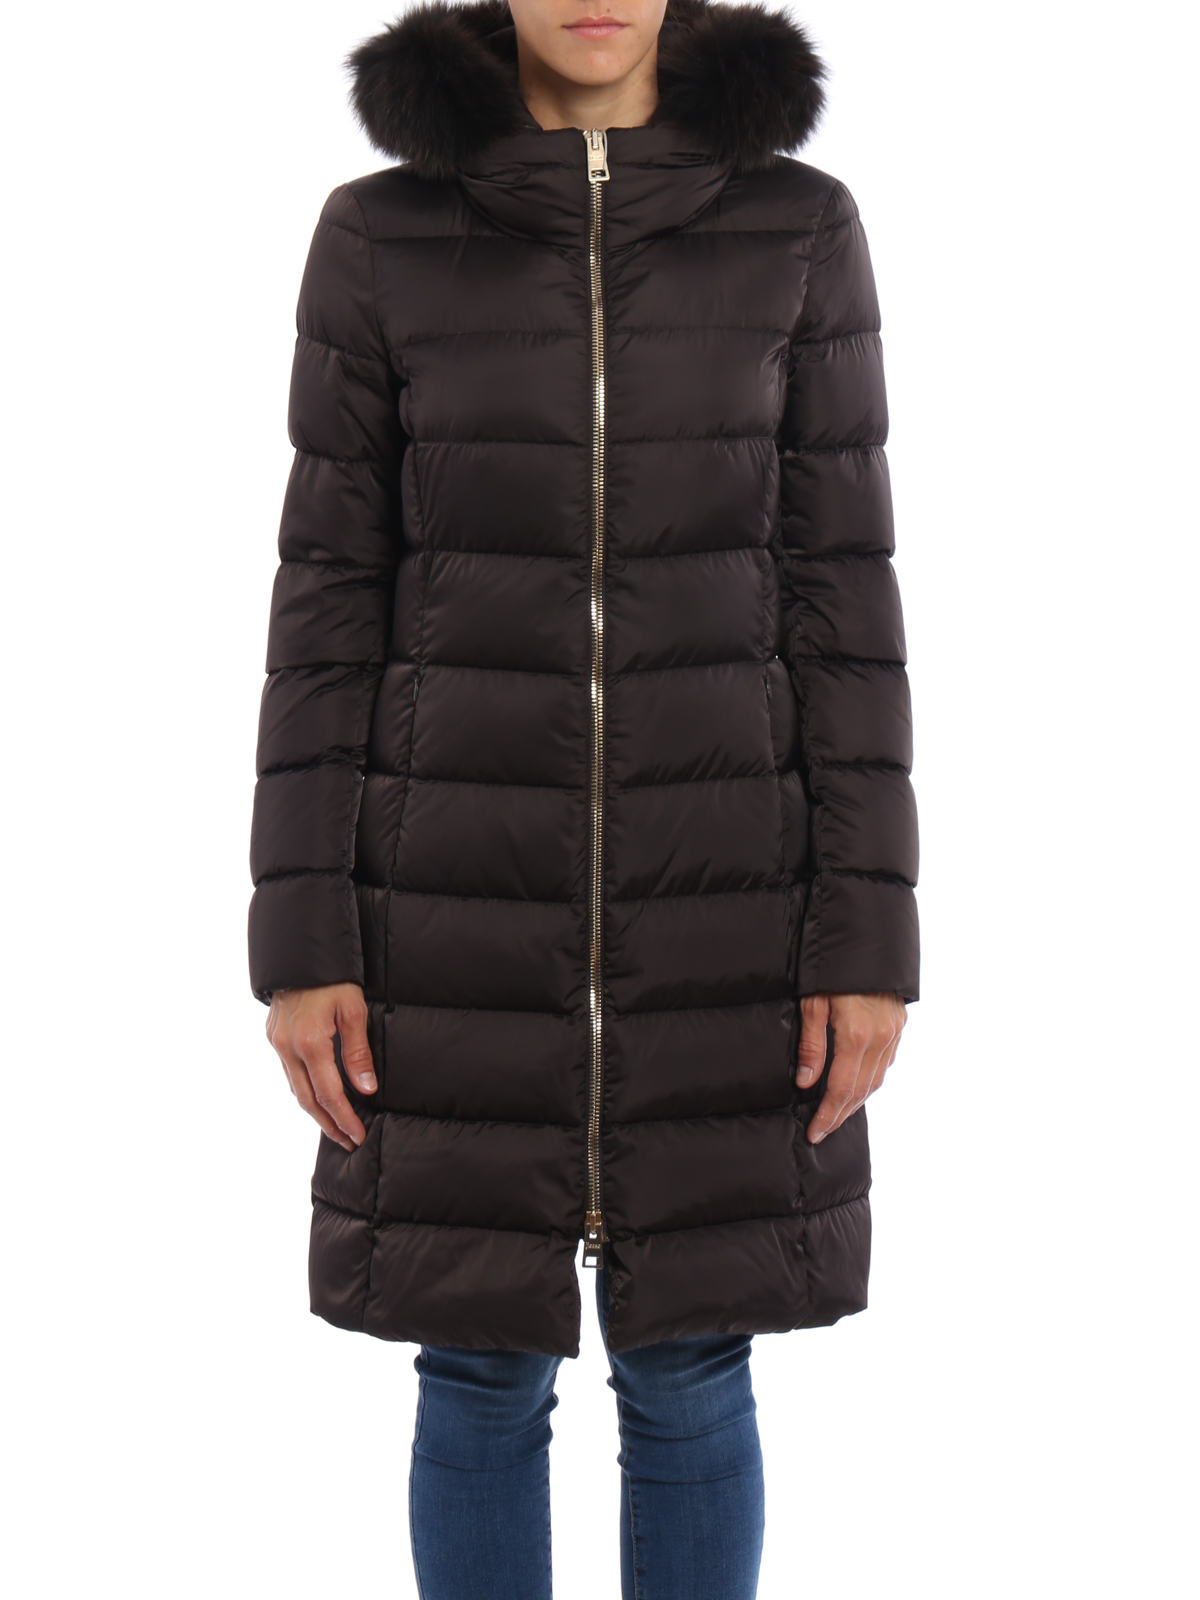 Online shopping from a great selection at Clothing Store. HARRYSTORE Women's Down Coat Jacket with Faux Fur Trim Hood Down Padded Long Winter Warm Parka Puffer Jacket Outwear.